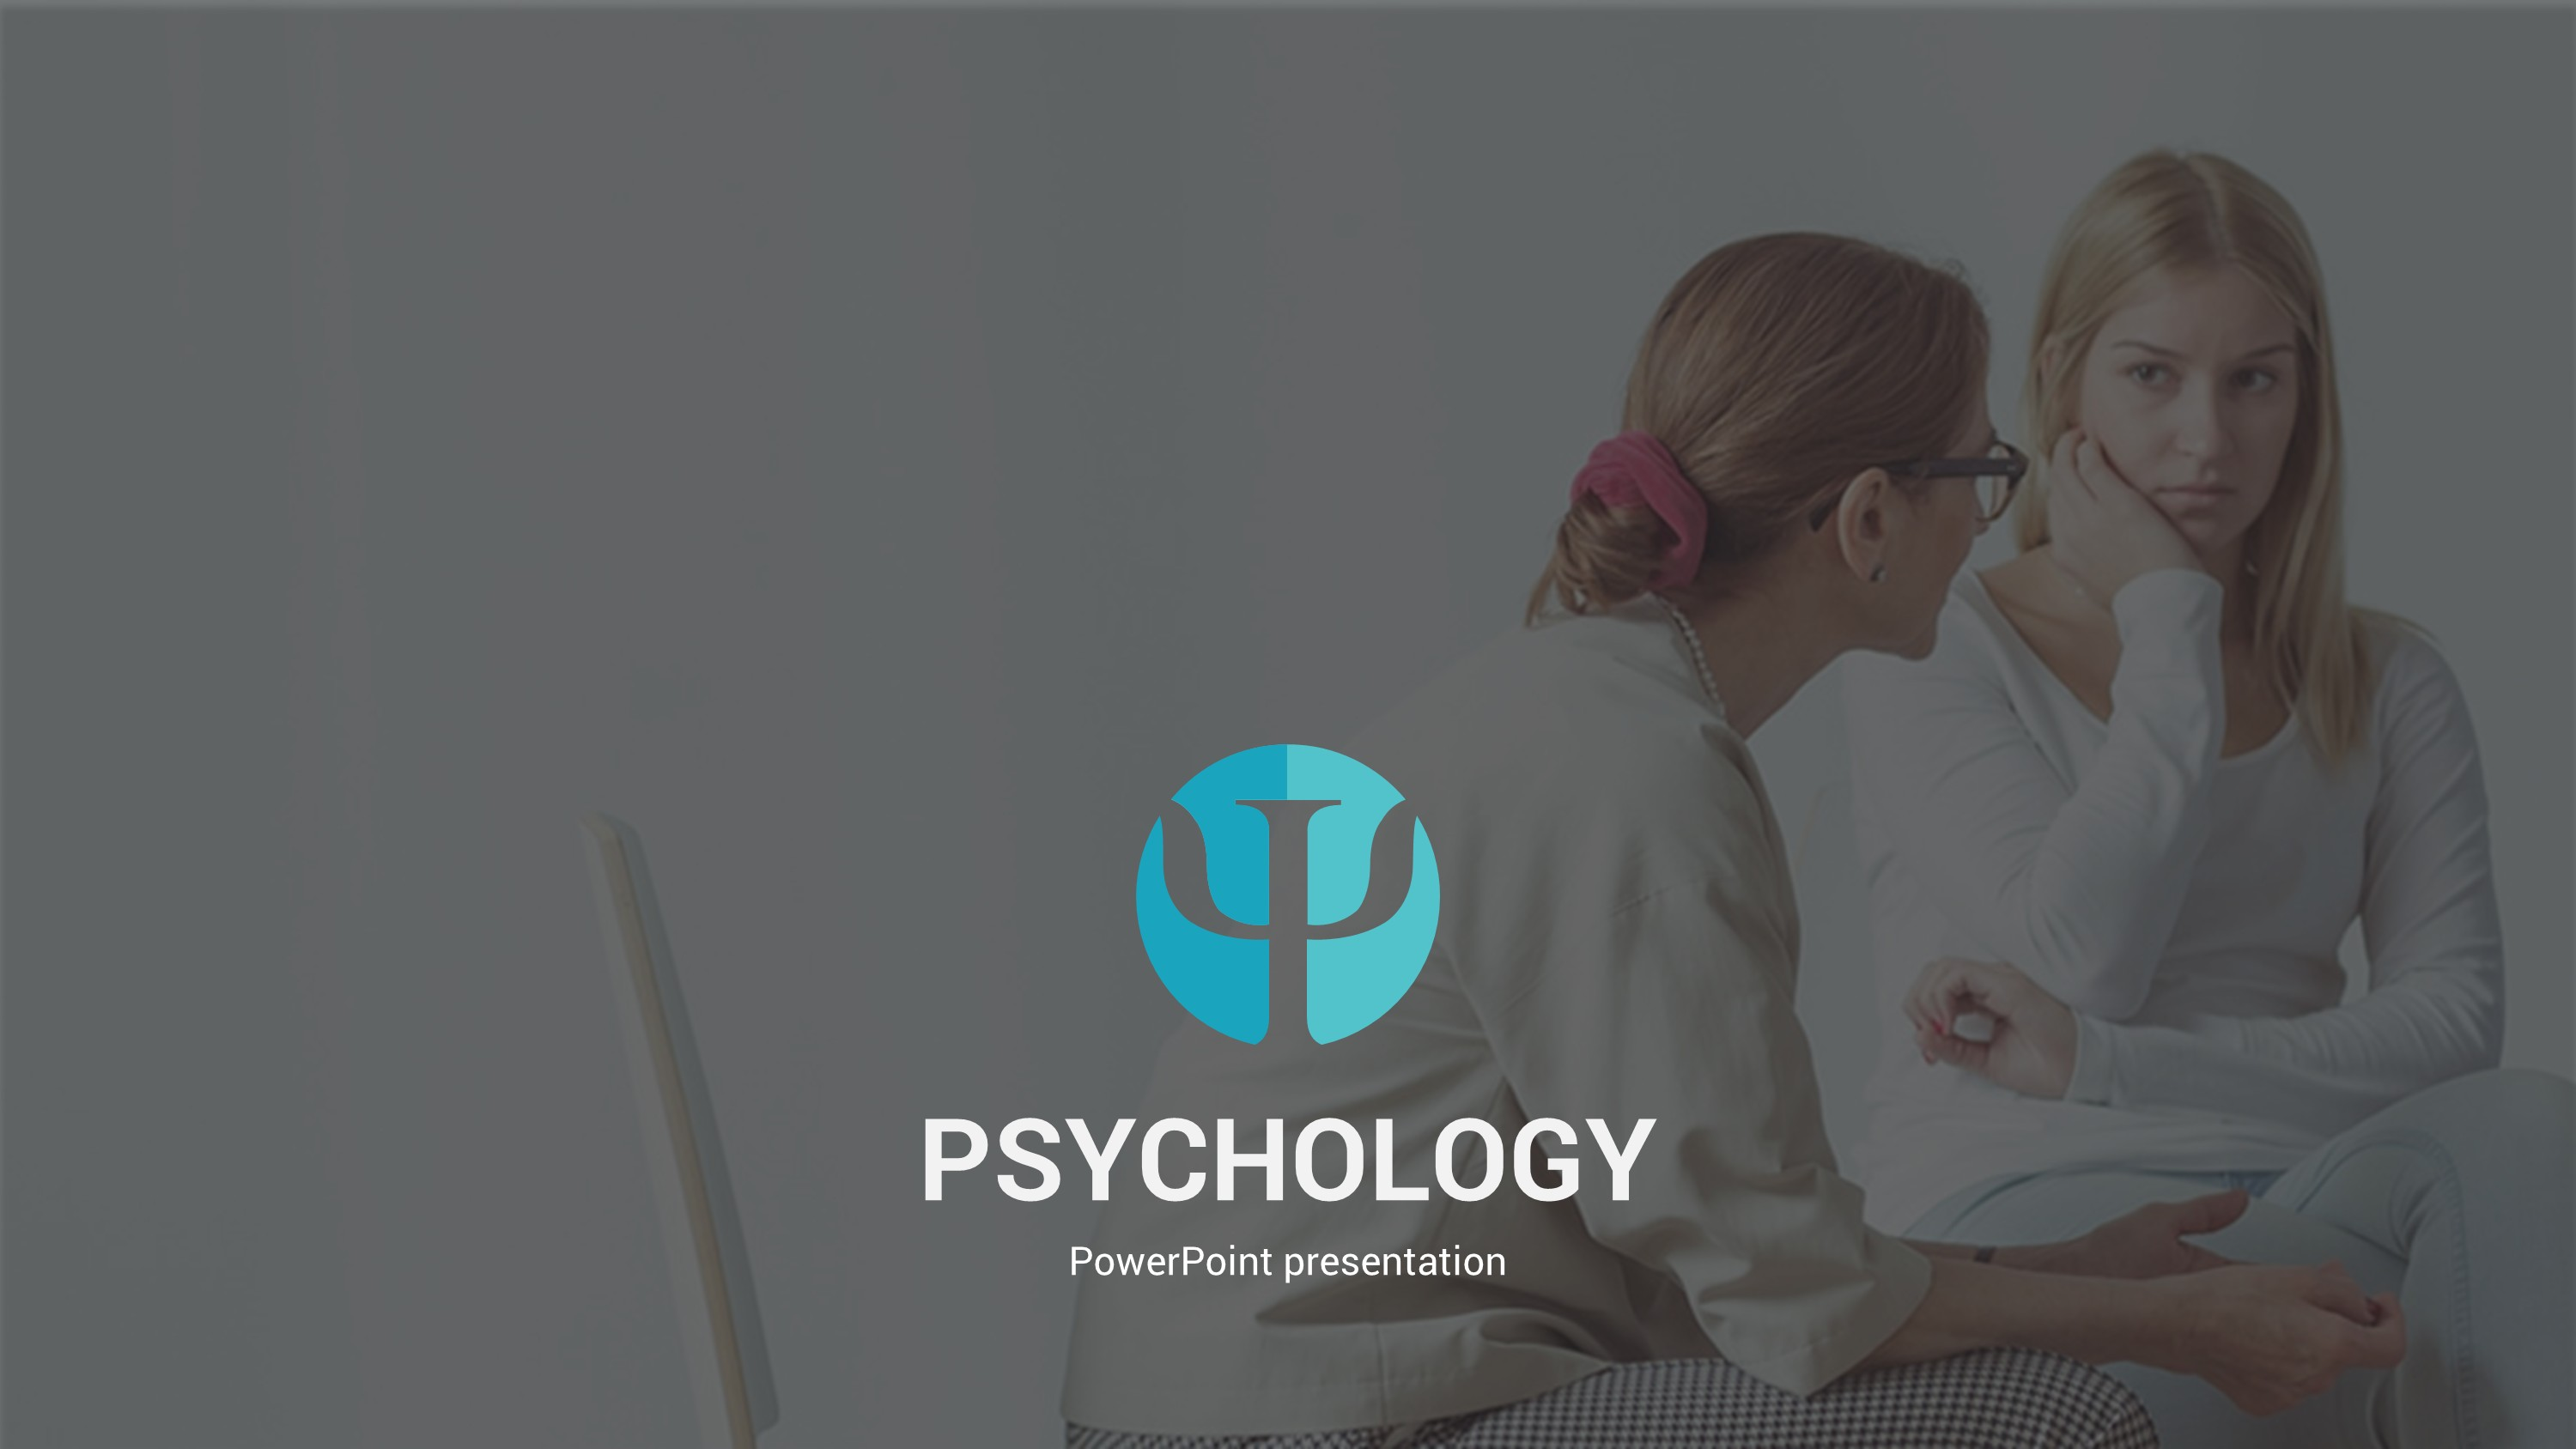 Psychology PowerPoint Presentation Template by rengstudio | GraphicRiver